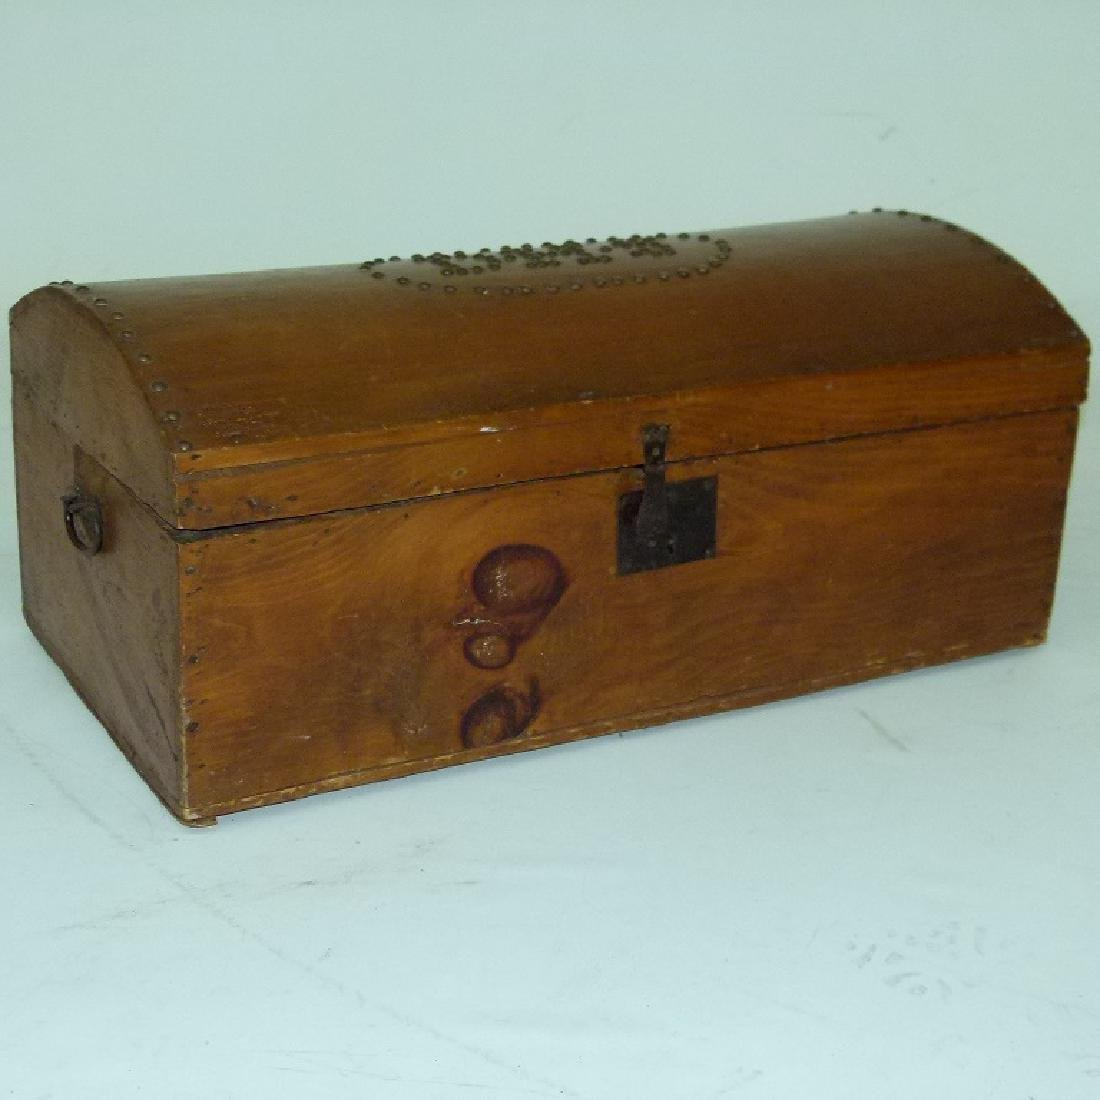 FOLK ART TACK DECORATED DOME TOP TRUNK 19TH C.